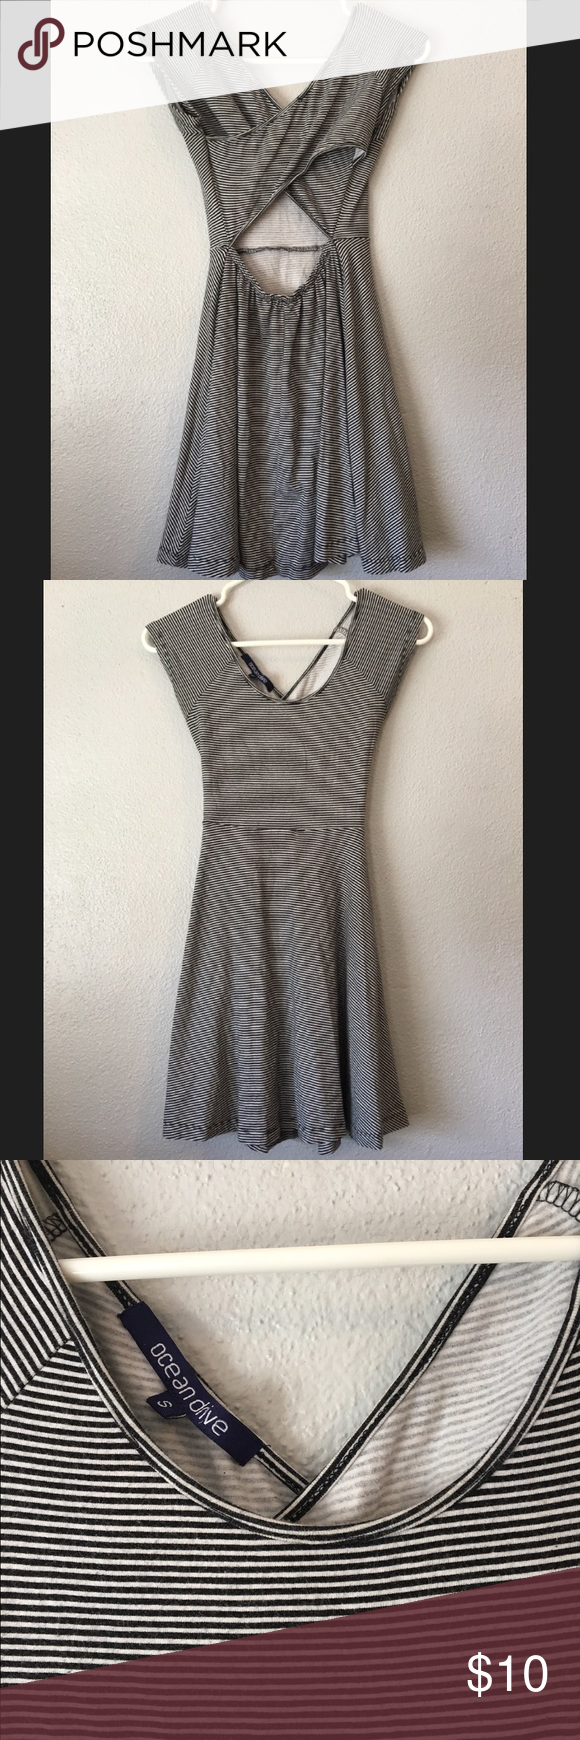 Striped skater dress open back Striped skater dress open back size small/XS Dresses Mini